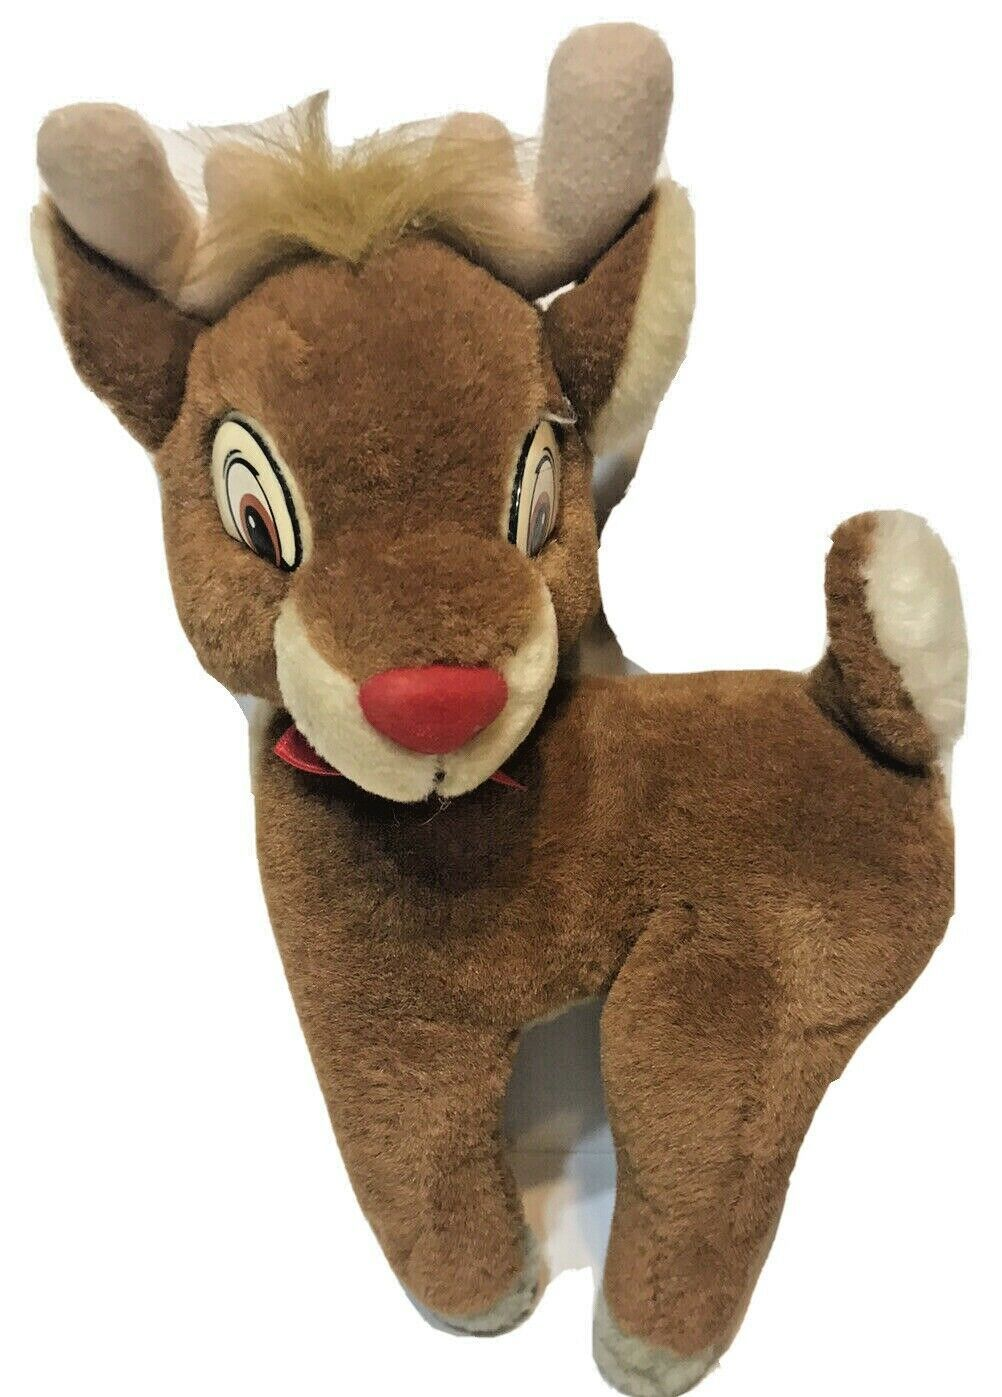 Vintage Rudolph The Red Nosed Reindeer Plush By Applause 10'' EUC Stuffed Animal - $15.57